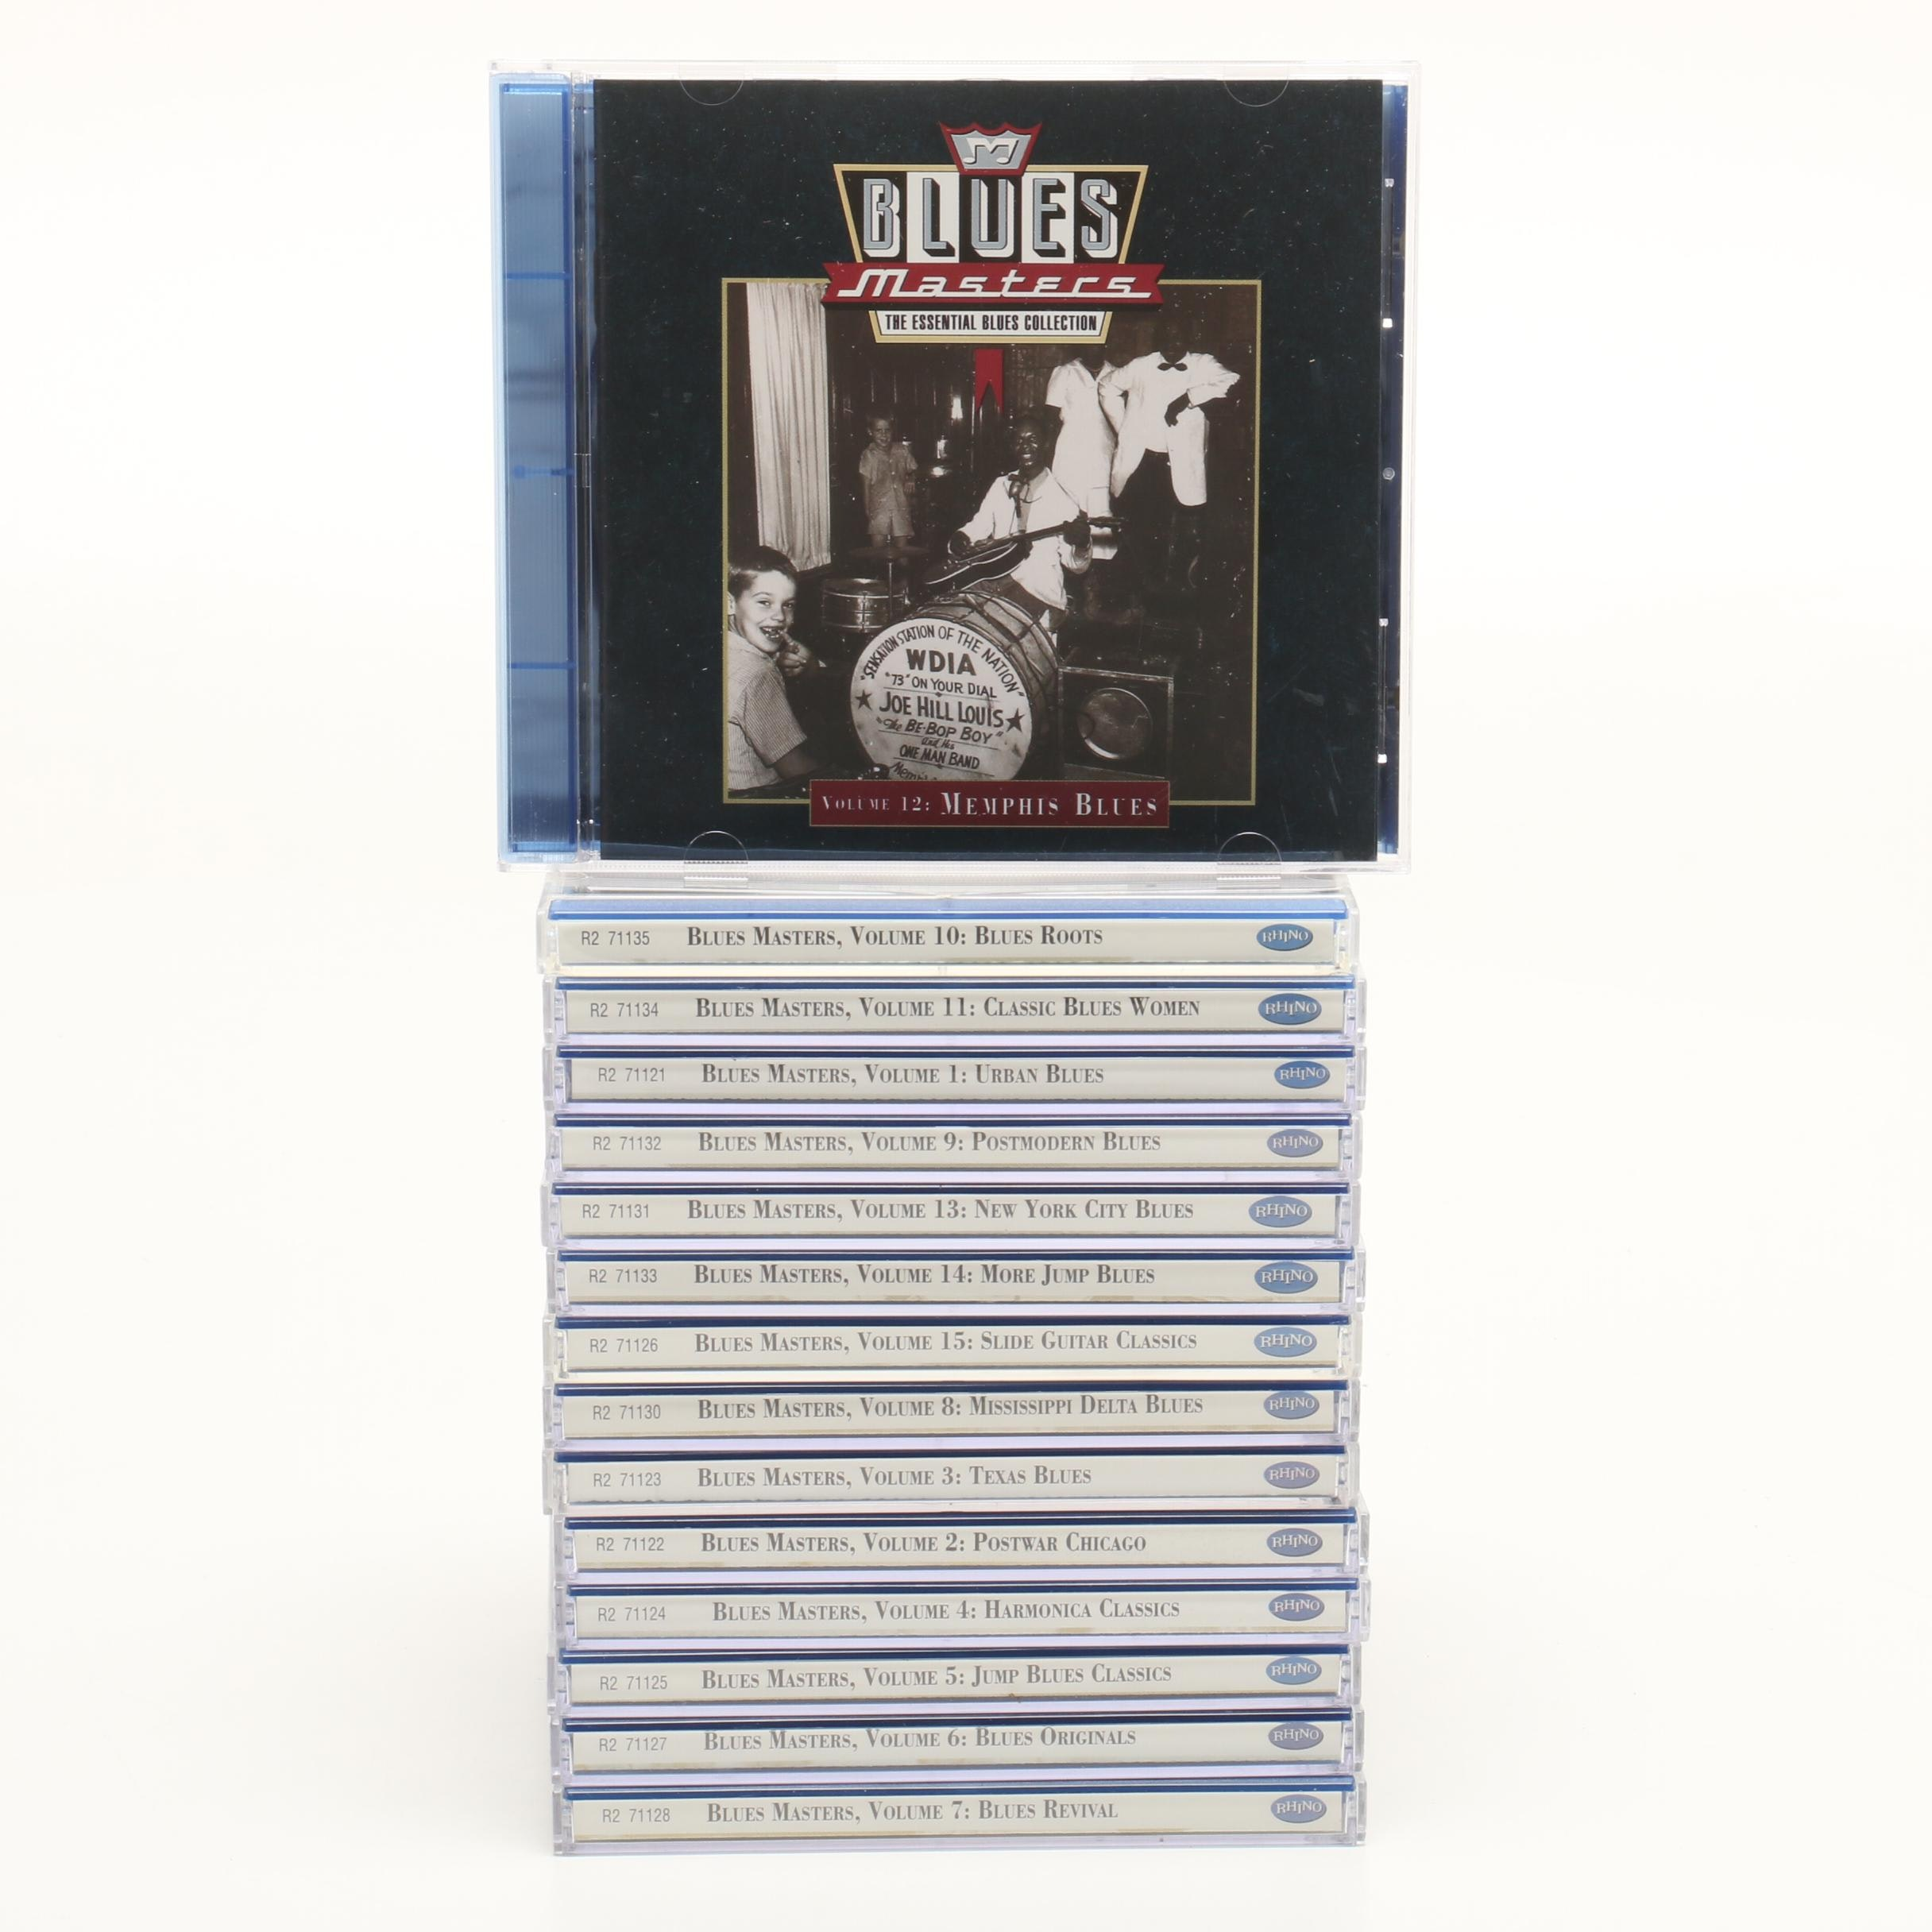 Blues Masters The Essential Blues Collection CDs